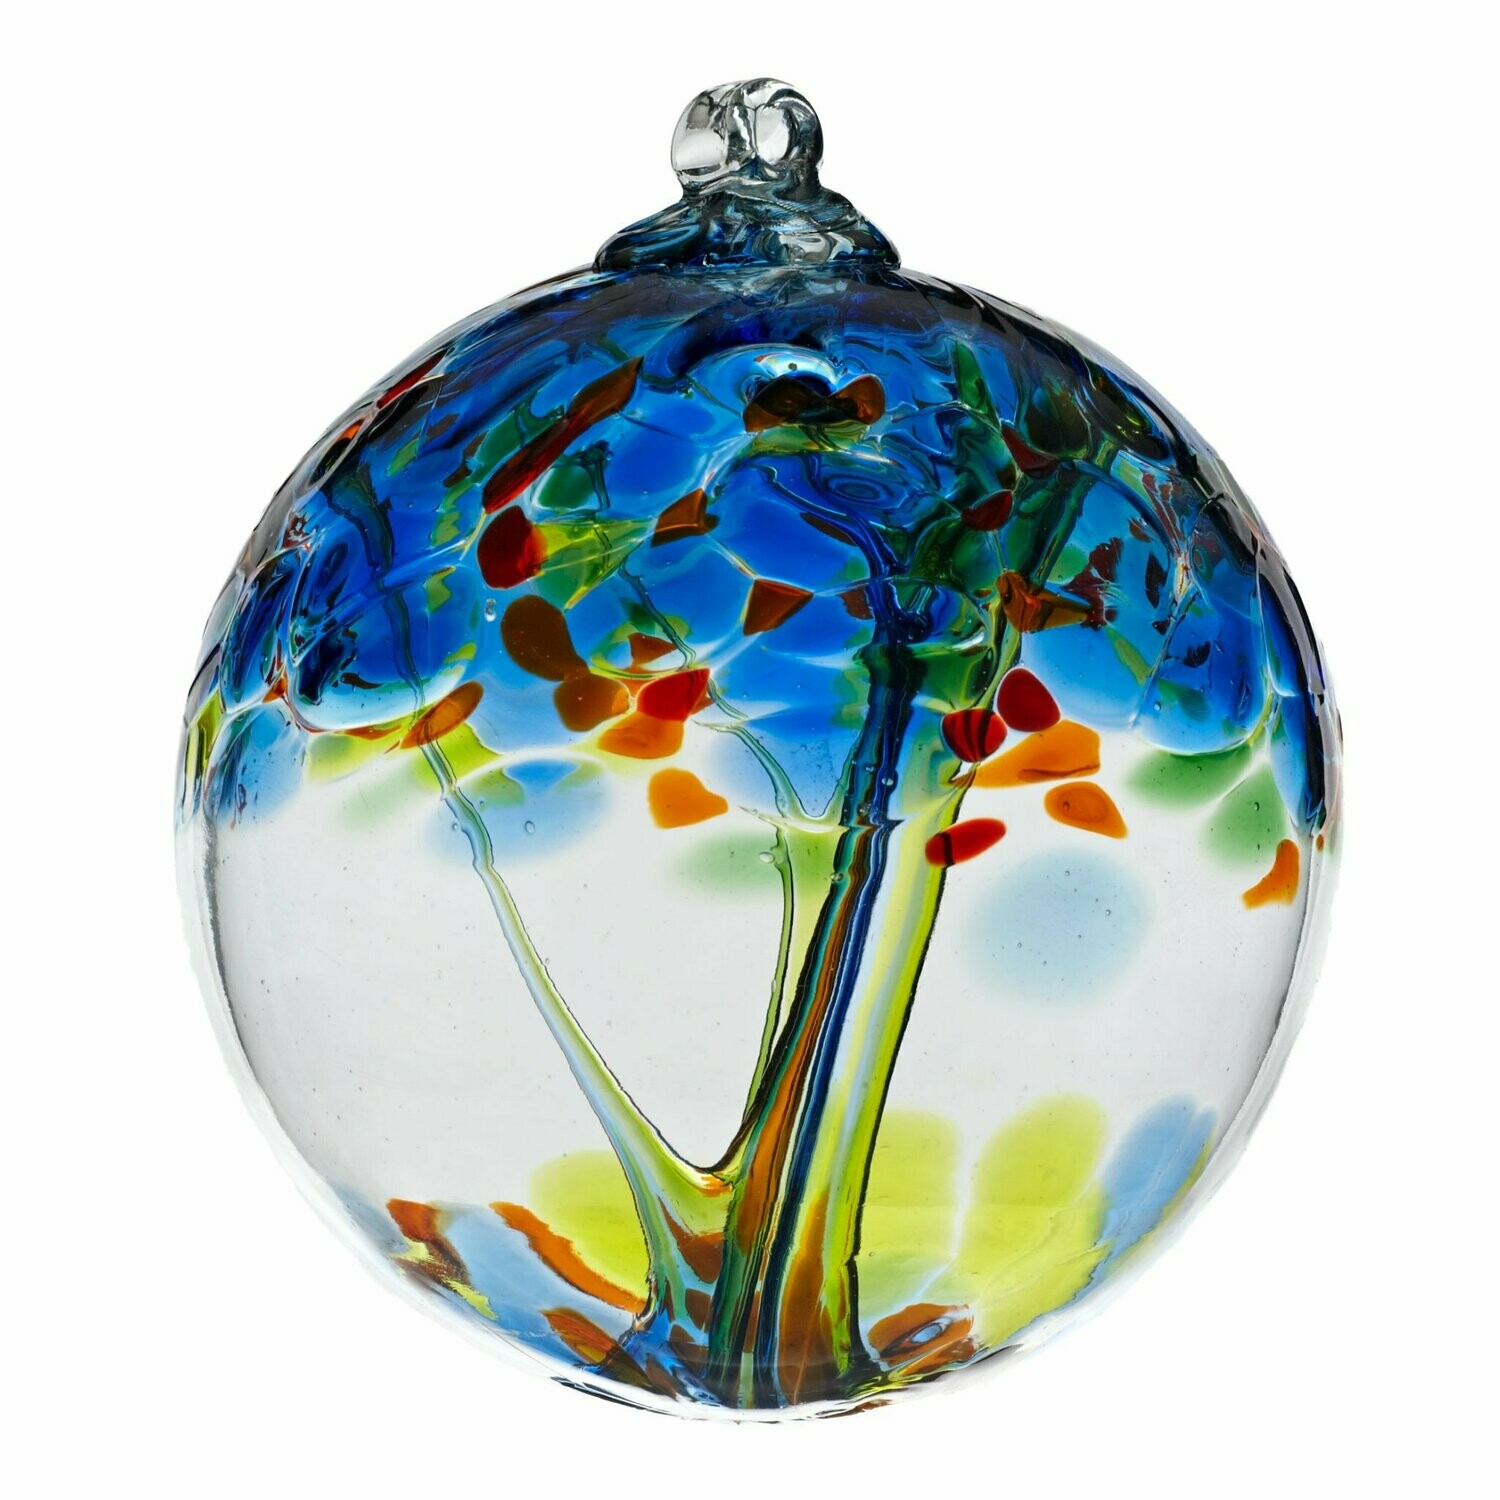 "Tree of Enchantment 6"" - Dreams - Friendship Ball - Canadian Blown Glass"